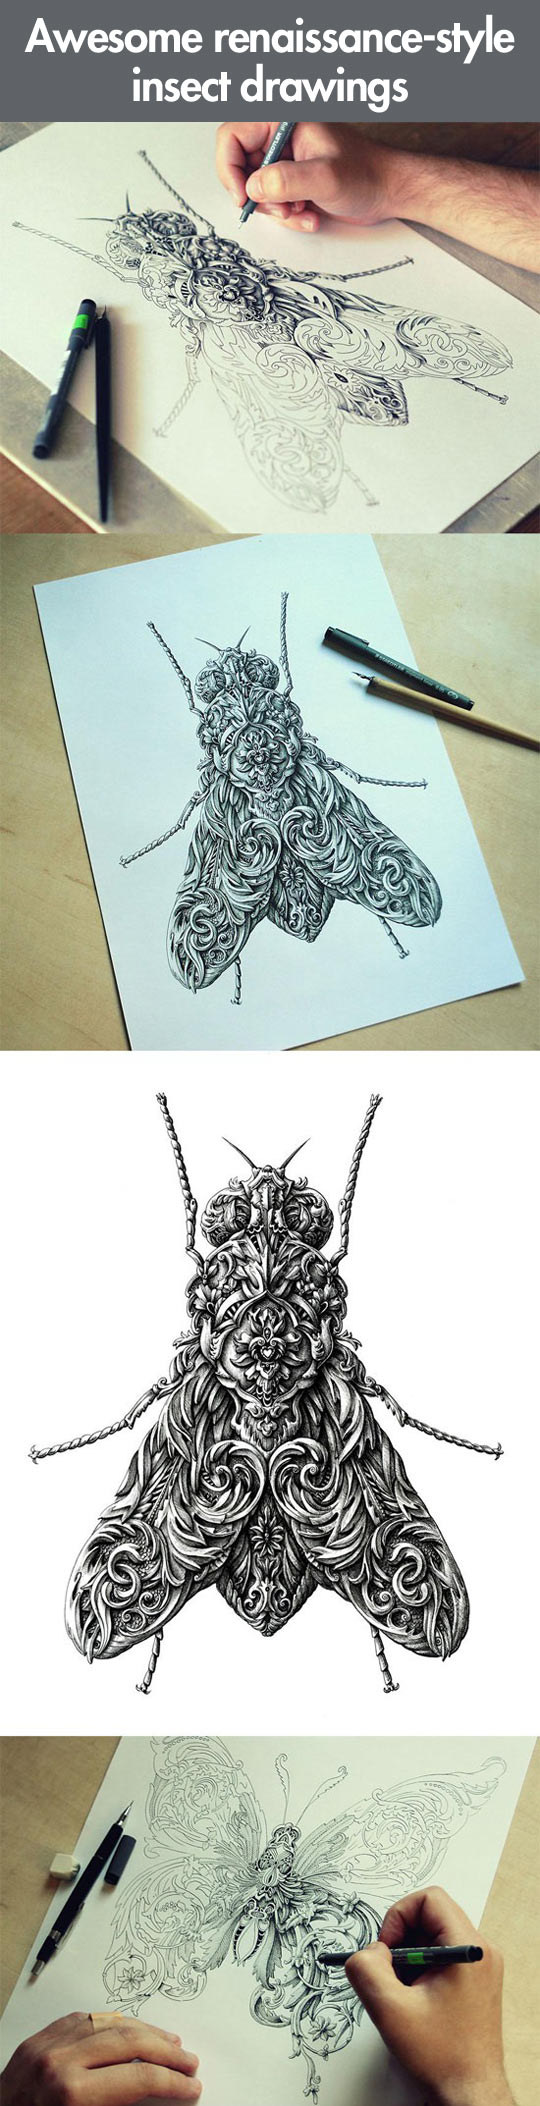 cool-insect-drawings-paper-pen